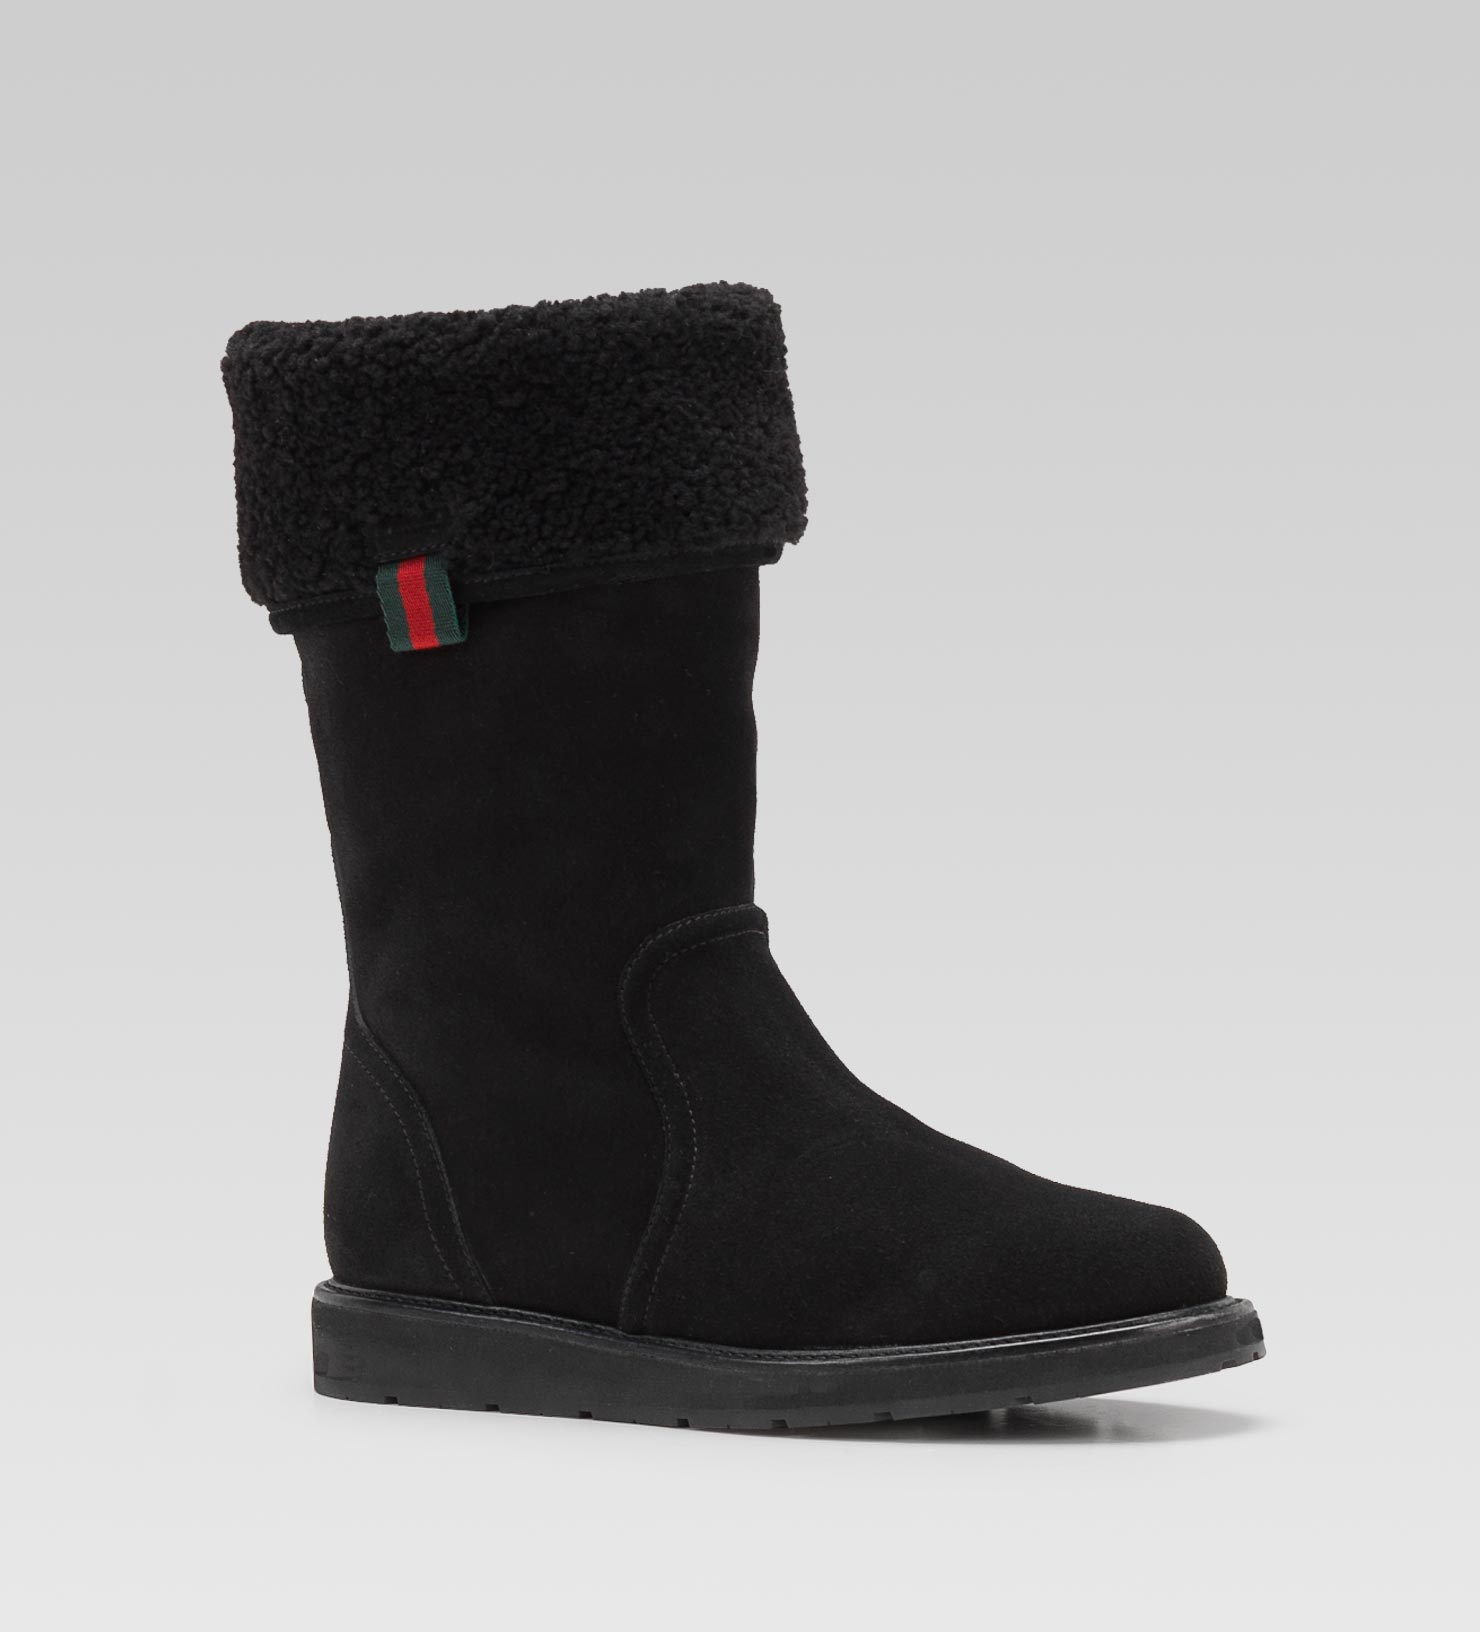 Lyst Gucci Luberon Shearling Lined Flat Boot In Black